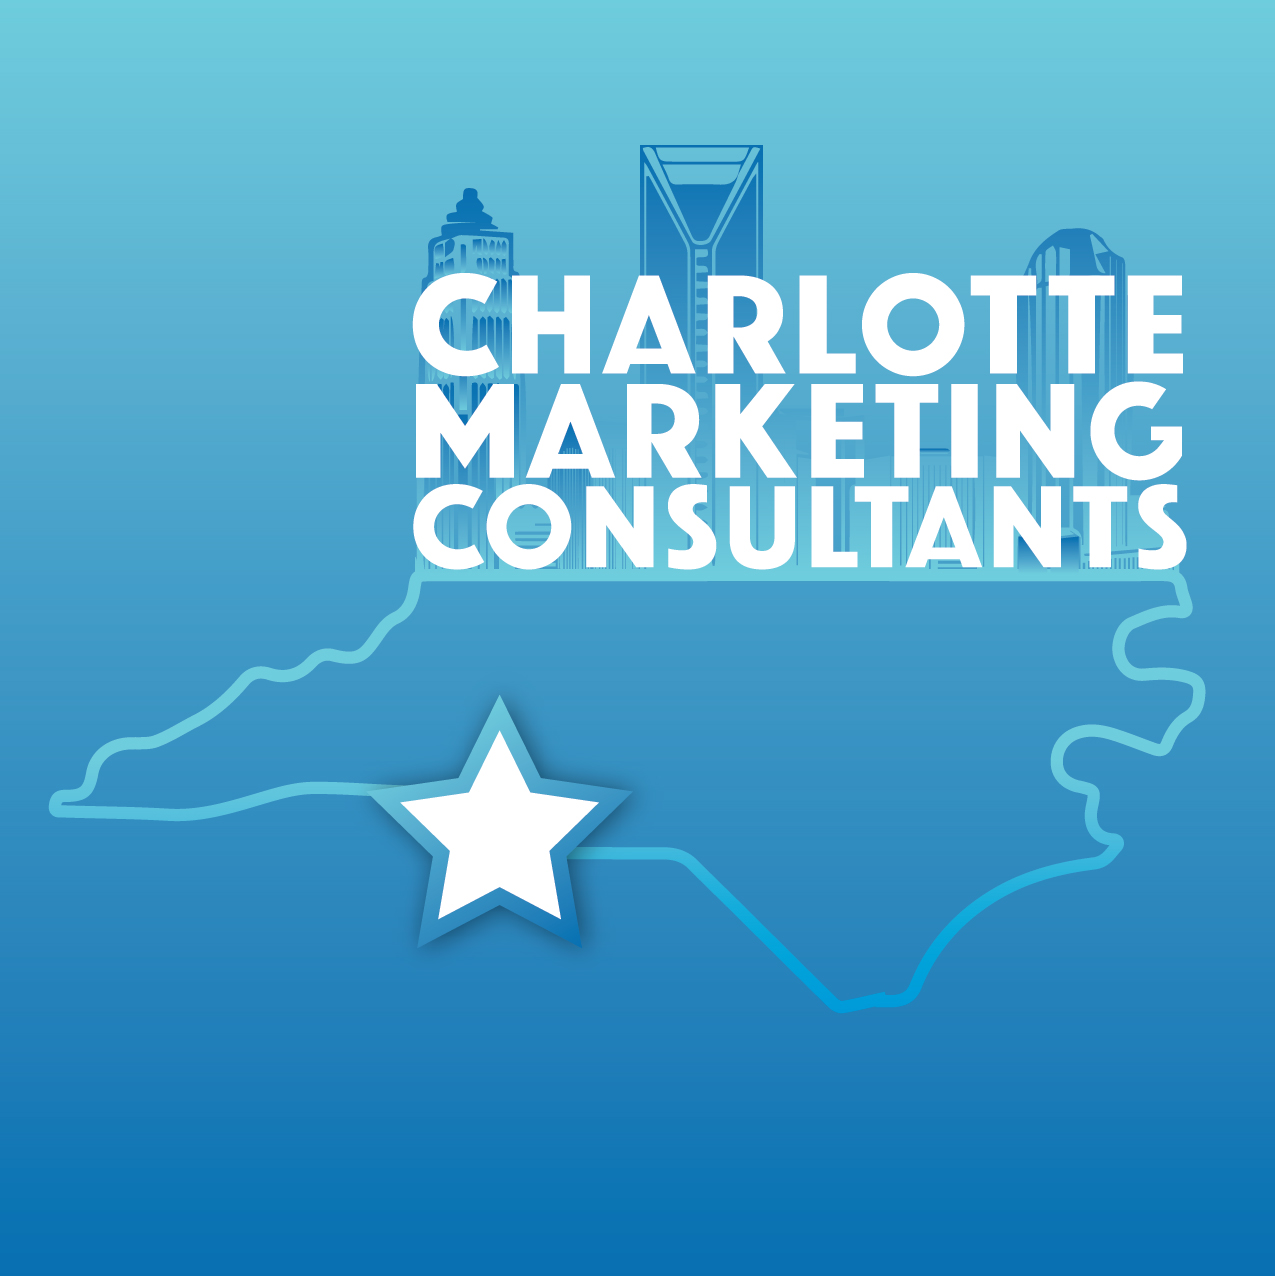 Charlotte Marketing Consultants  The Best And Brightest. Work At Home Mom Forums Truck Driver Attorney. Accredited Paralegal Programs Online. Four D College Victorville Ca. 2 Year School Programs Flower That Means Love. Schools For Healthcare Administration. Aba Paralegal Schools In California. Babysitting Online Classes Local Bug Tracker. Mutual Funds V S Stocks Web Analytics Website